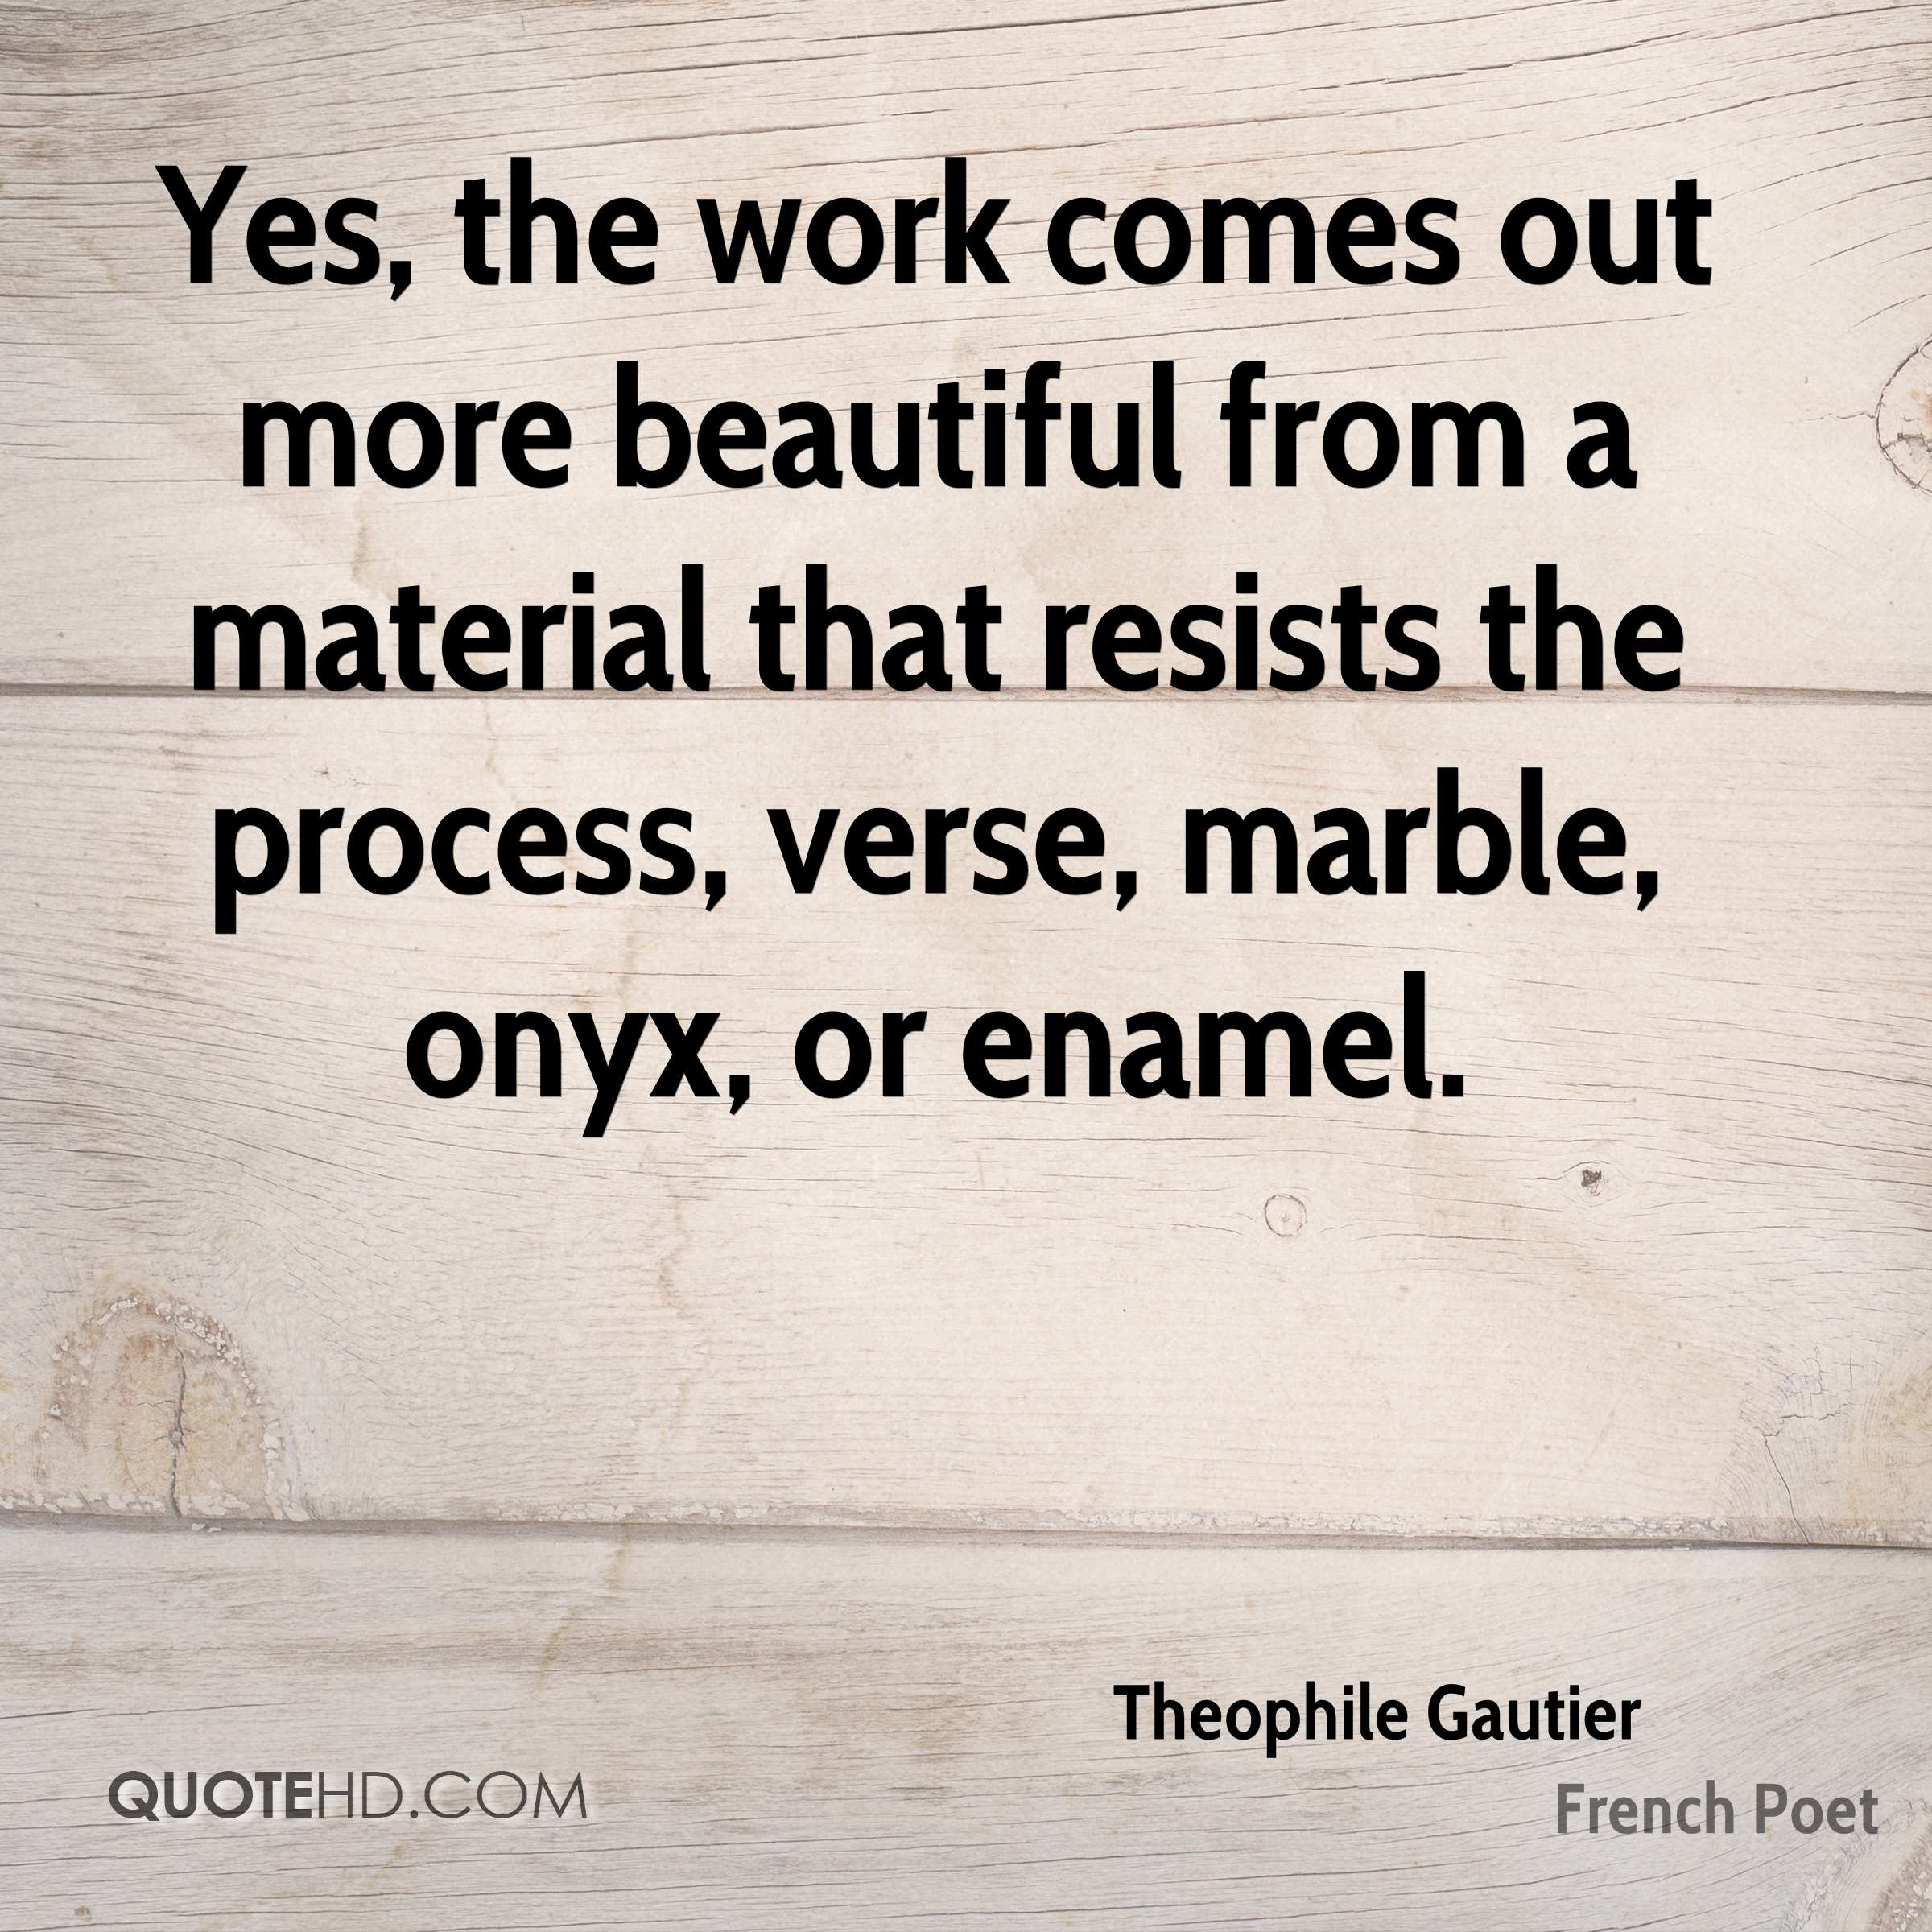 Yes, the work comes out more beautiful from a material that resists the process, verse, marble, onyx, or enamel.